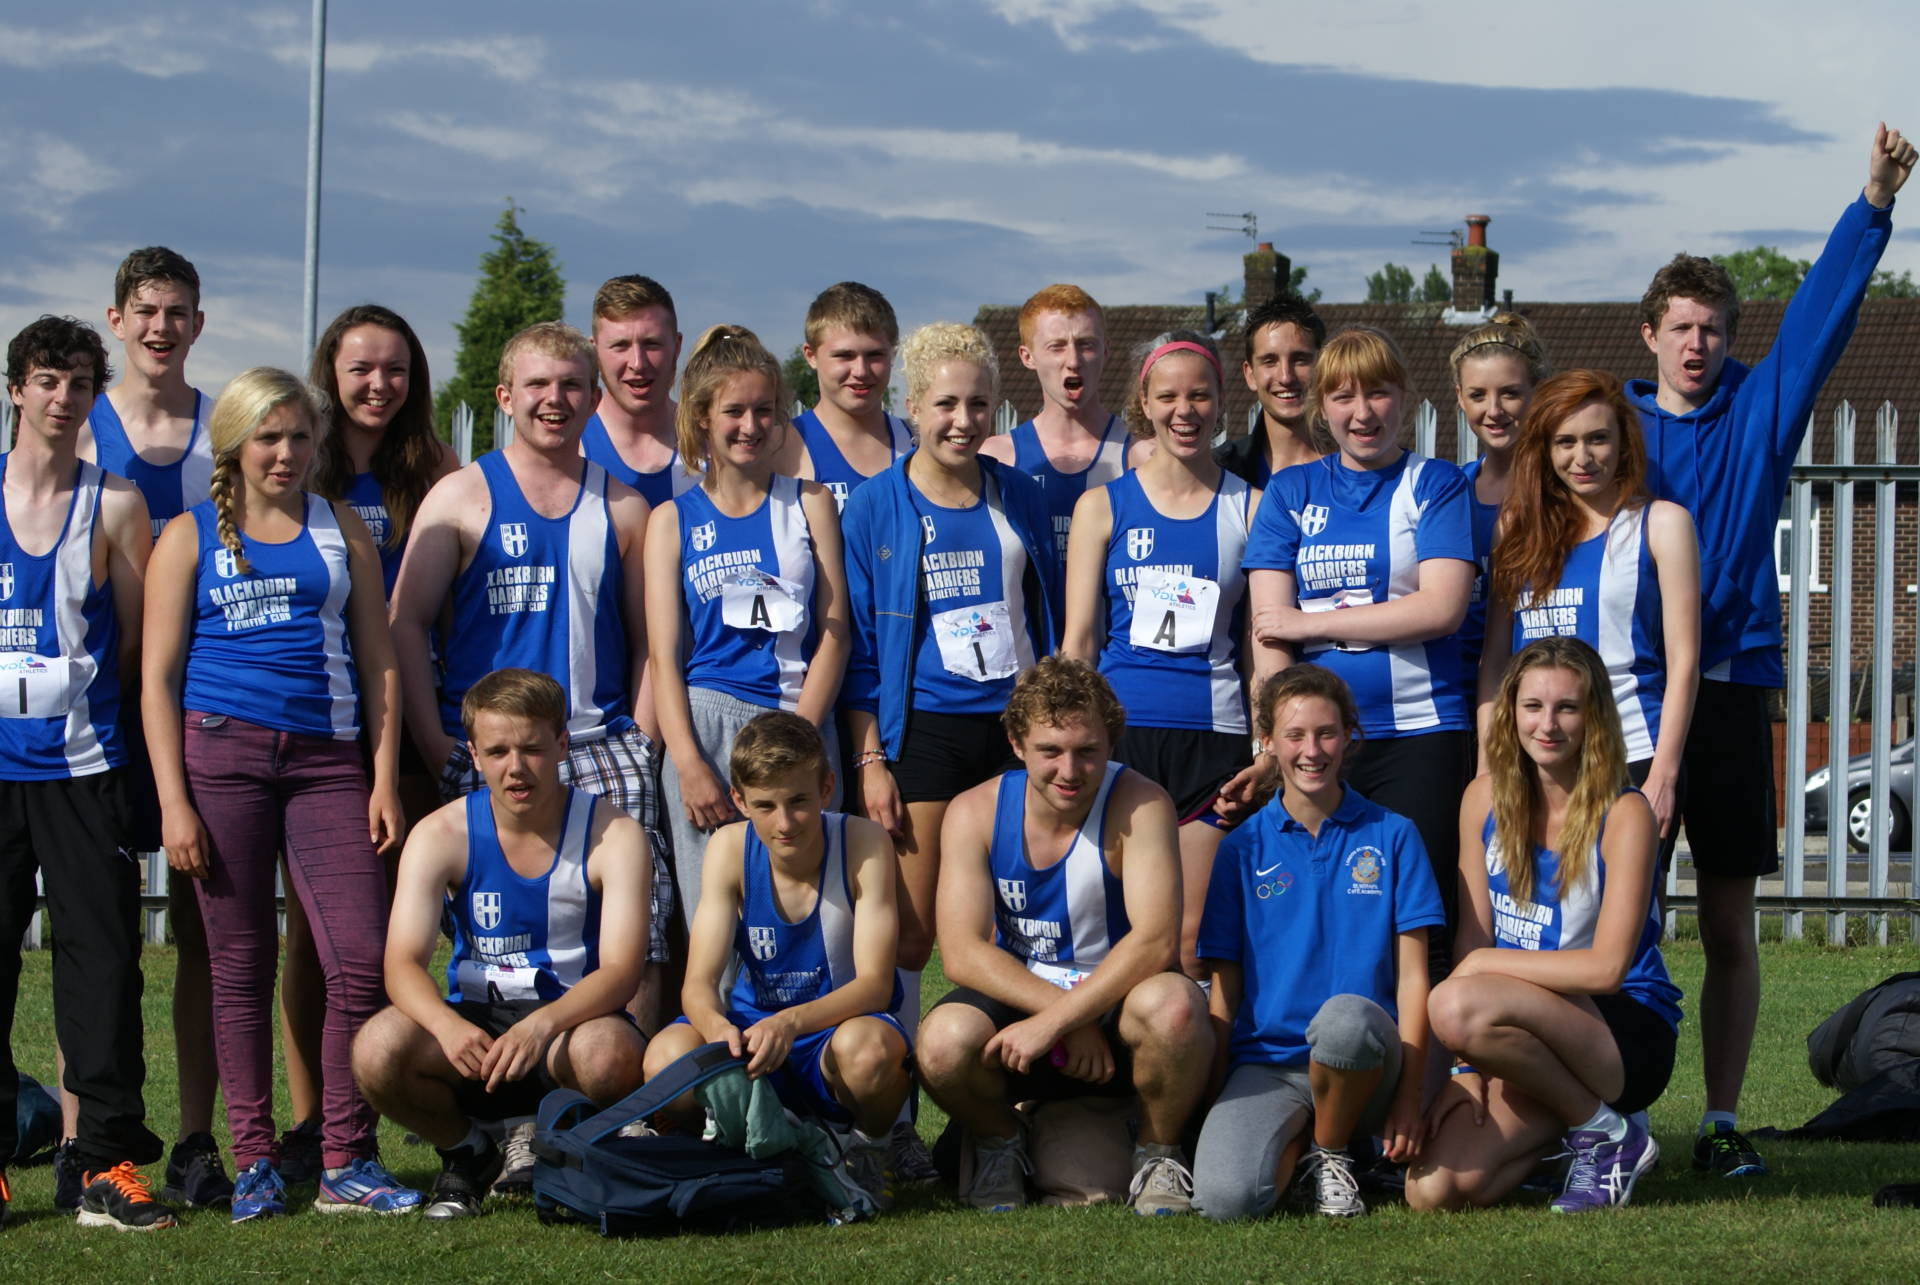 YDL U17 / U20 Division West 2 Champions and Promotion to Division One